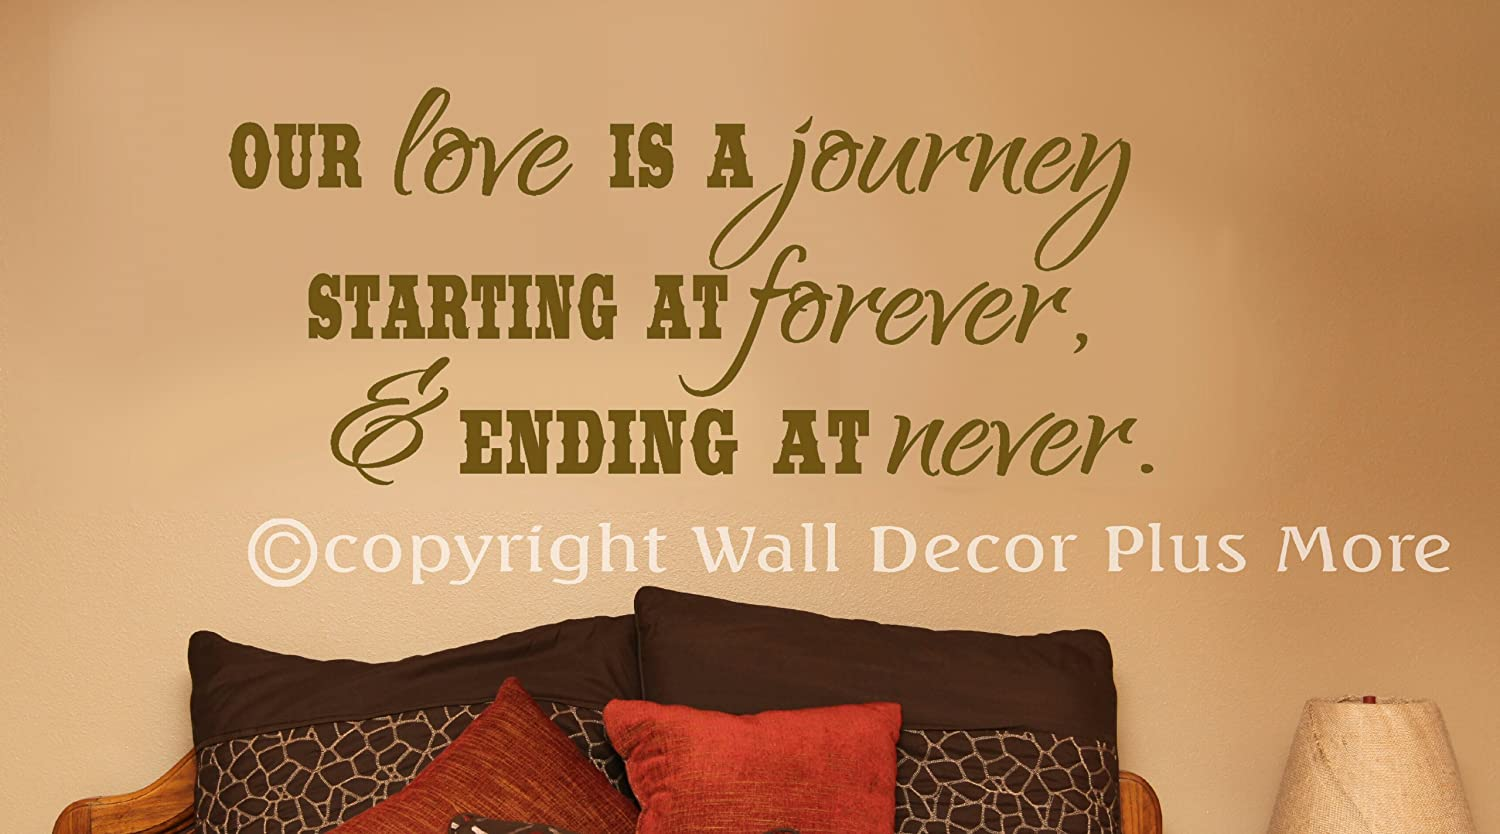 Wall Decor Plus More WDPM2892 Our Love is a Journey, Beginning at ...